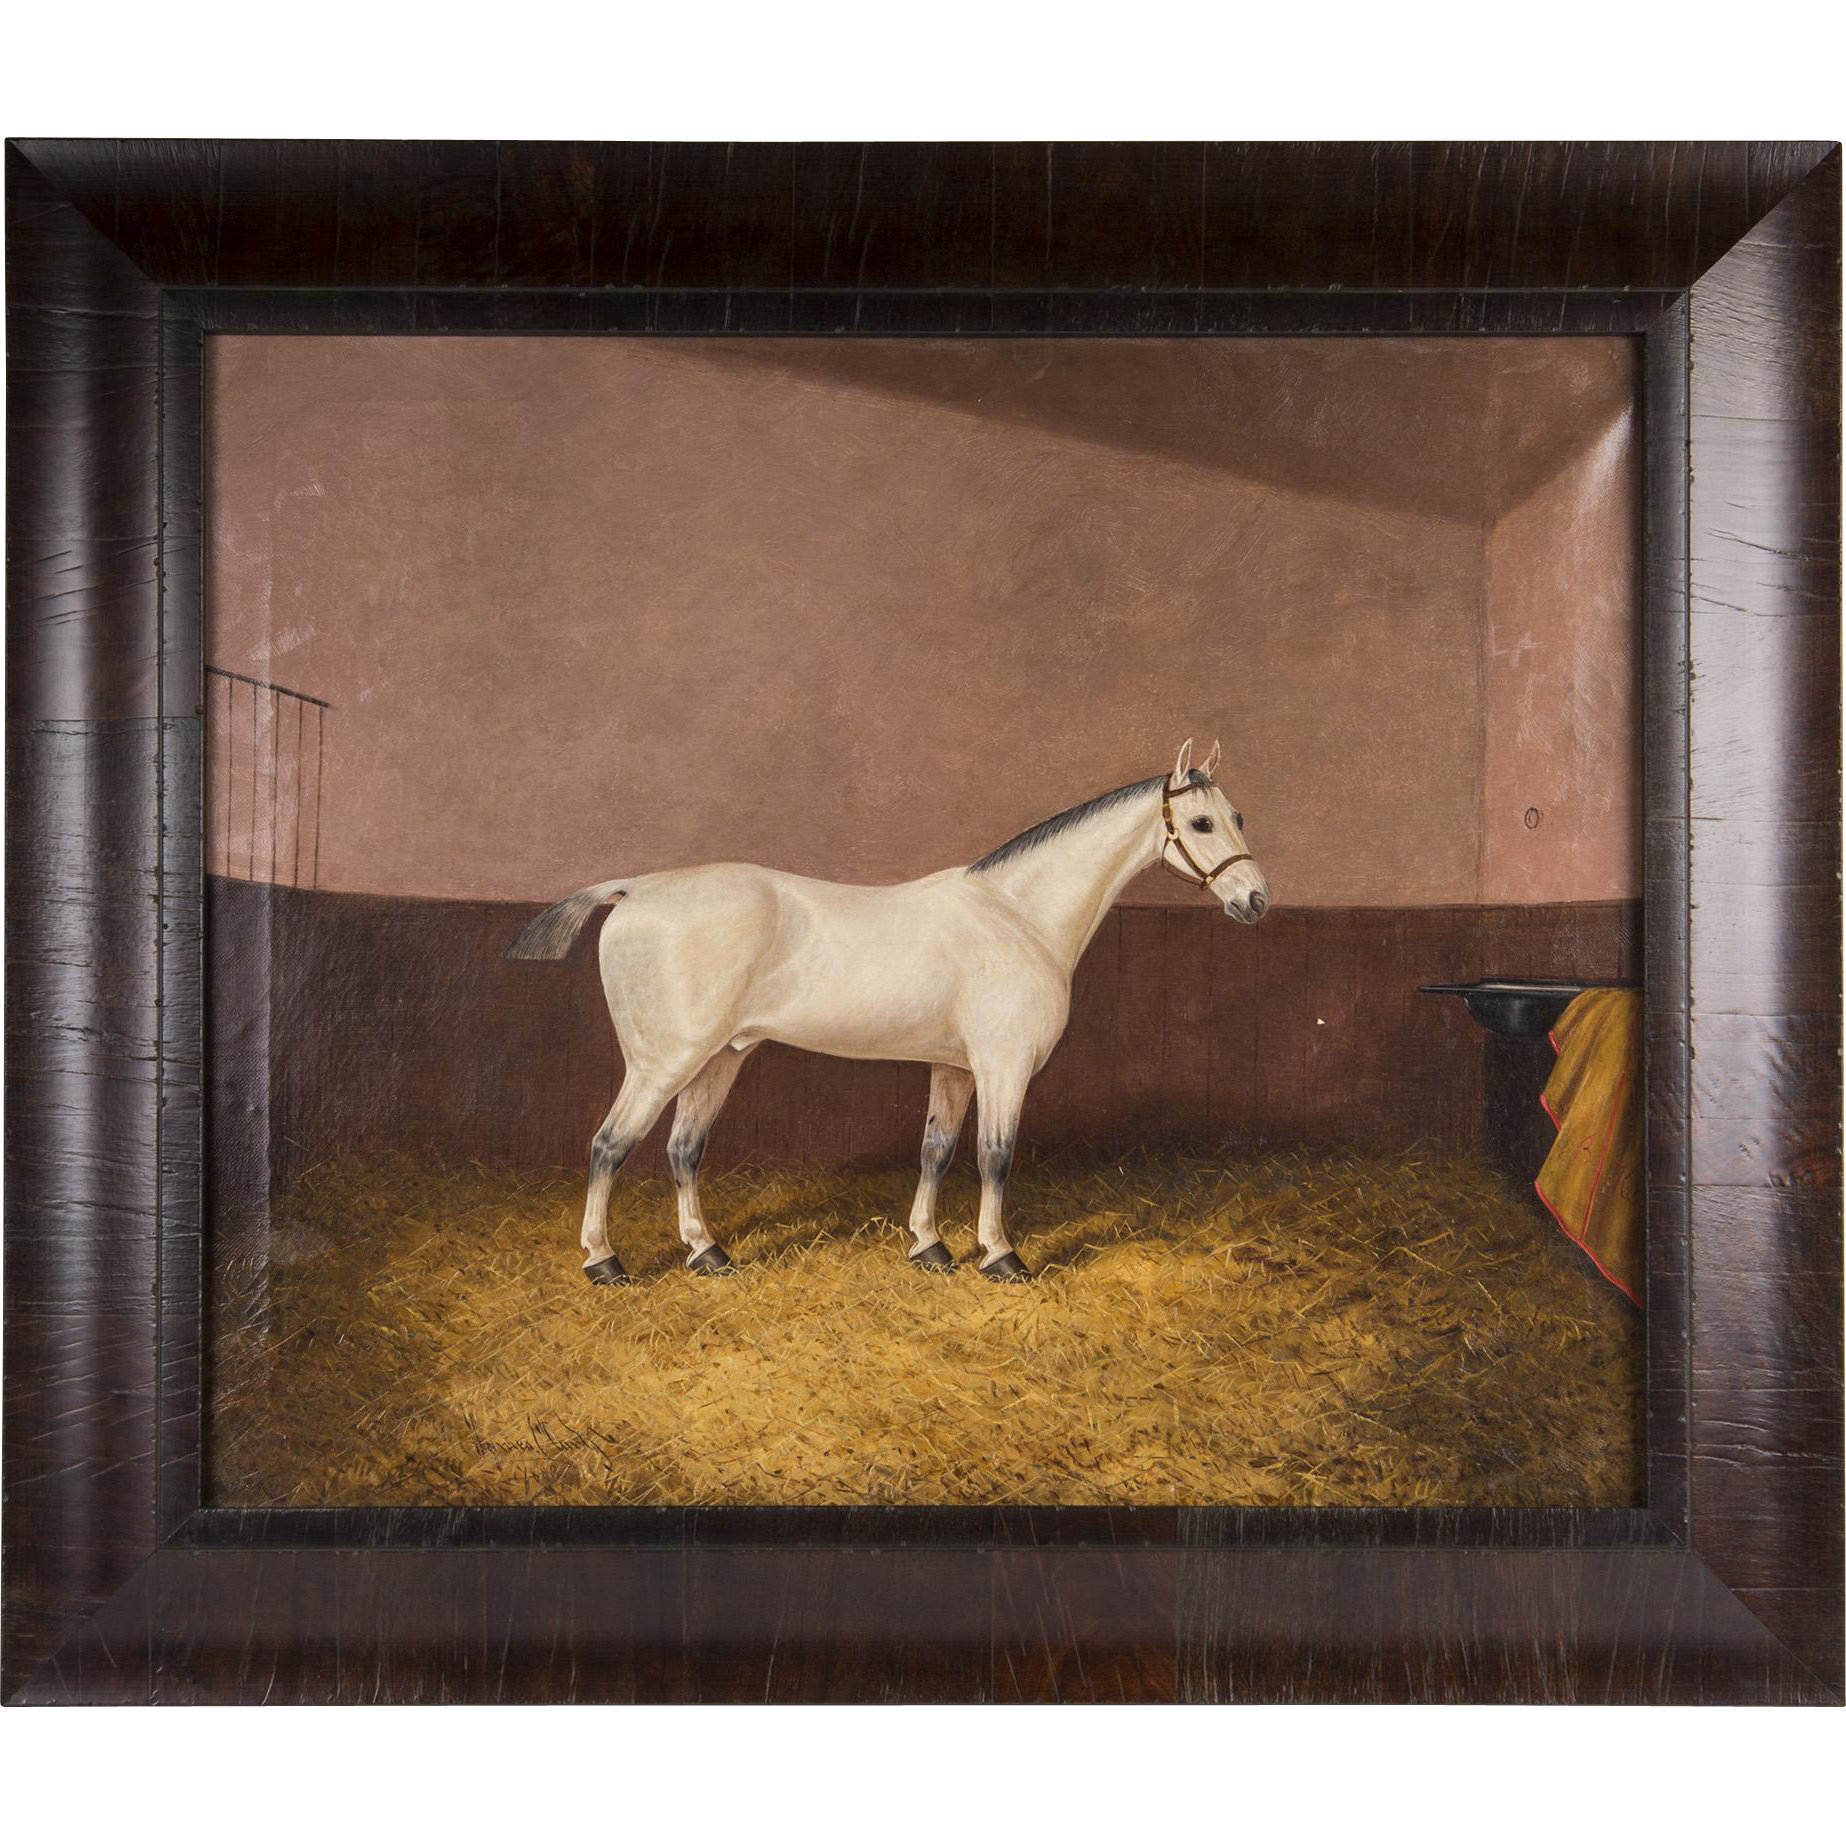 1888 Equestrian Oil Painting By James Albert Clark